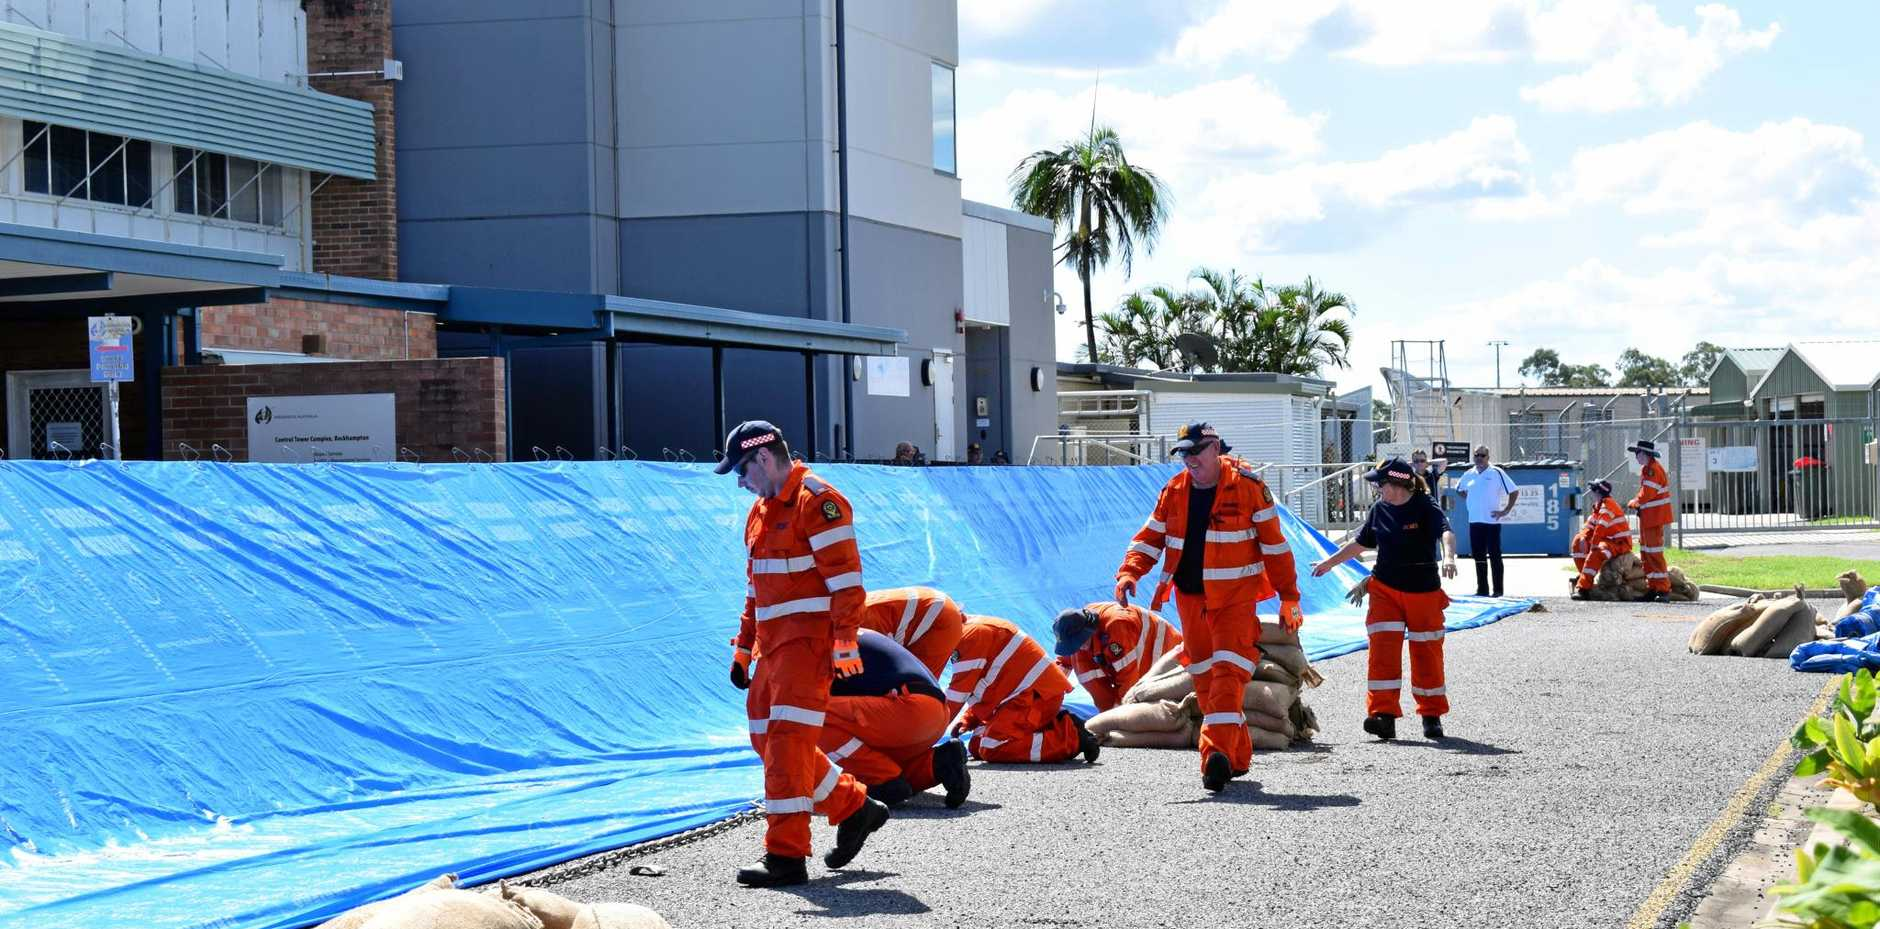 Rockhampton Airport was closed during the flood, with this temporary flood barrier installed. It has now re-opened, but a free suttle service taking travellers to Gladstone flights will continue this week.